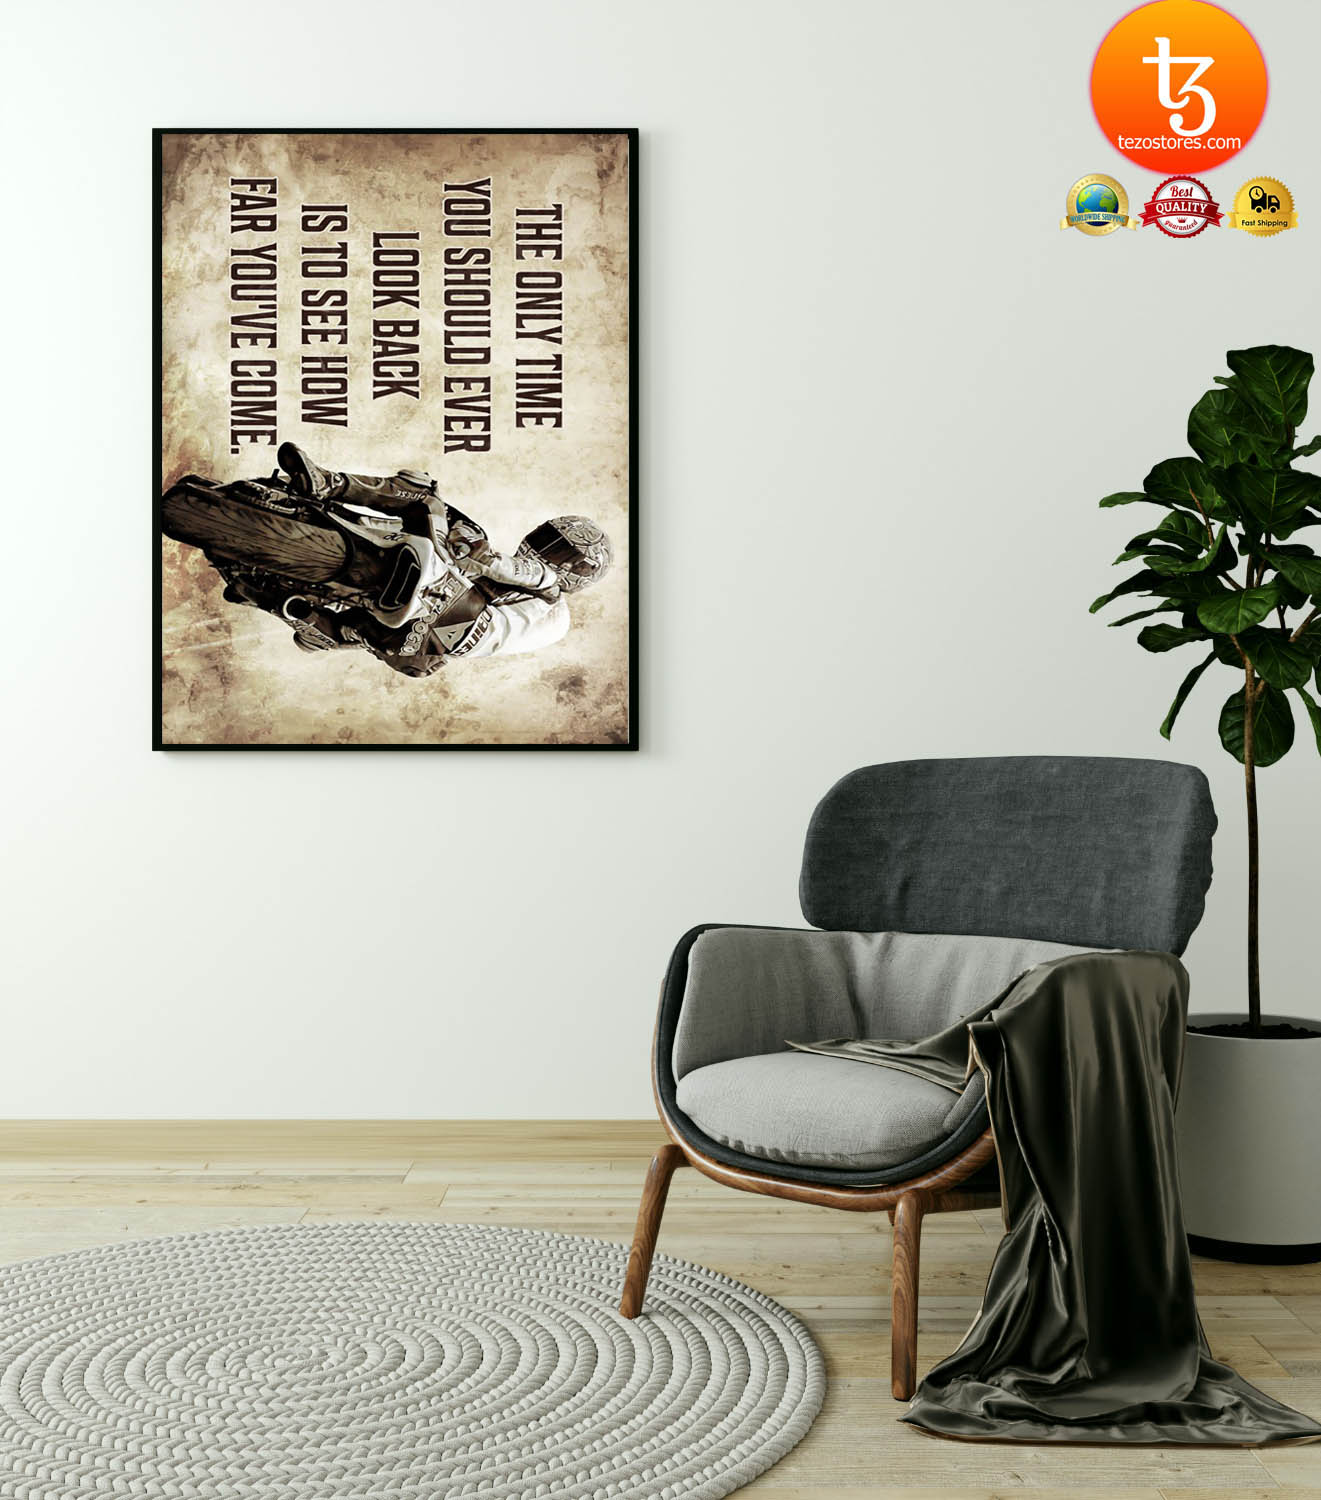 Racing motorcycle The only time you should ever look back is to see how far you've come poster 23